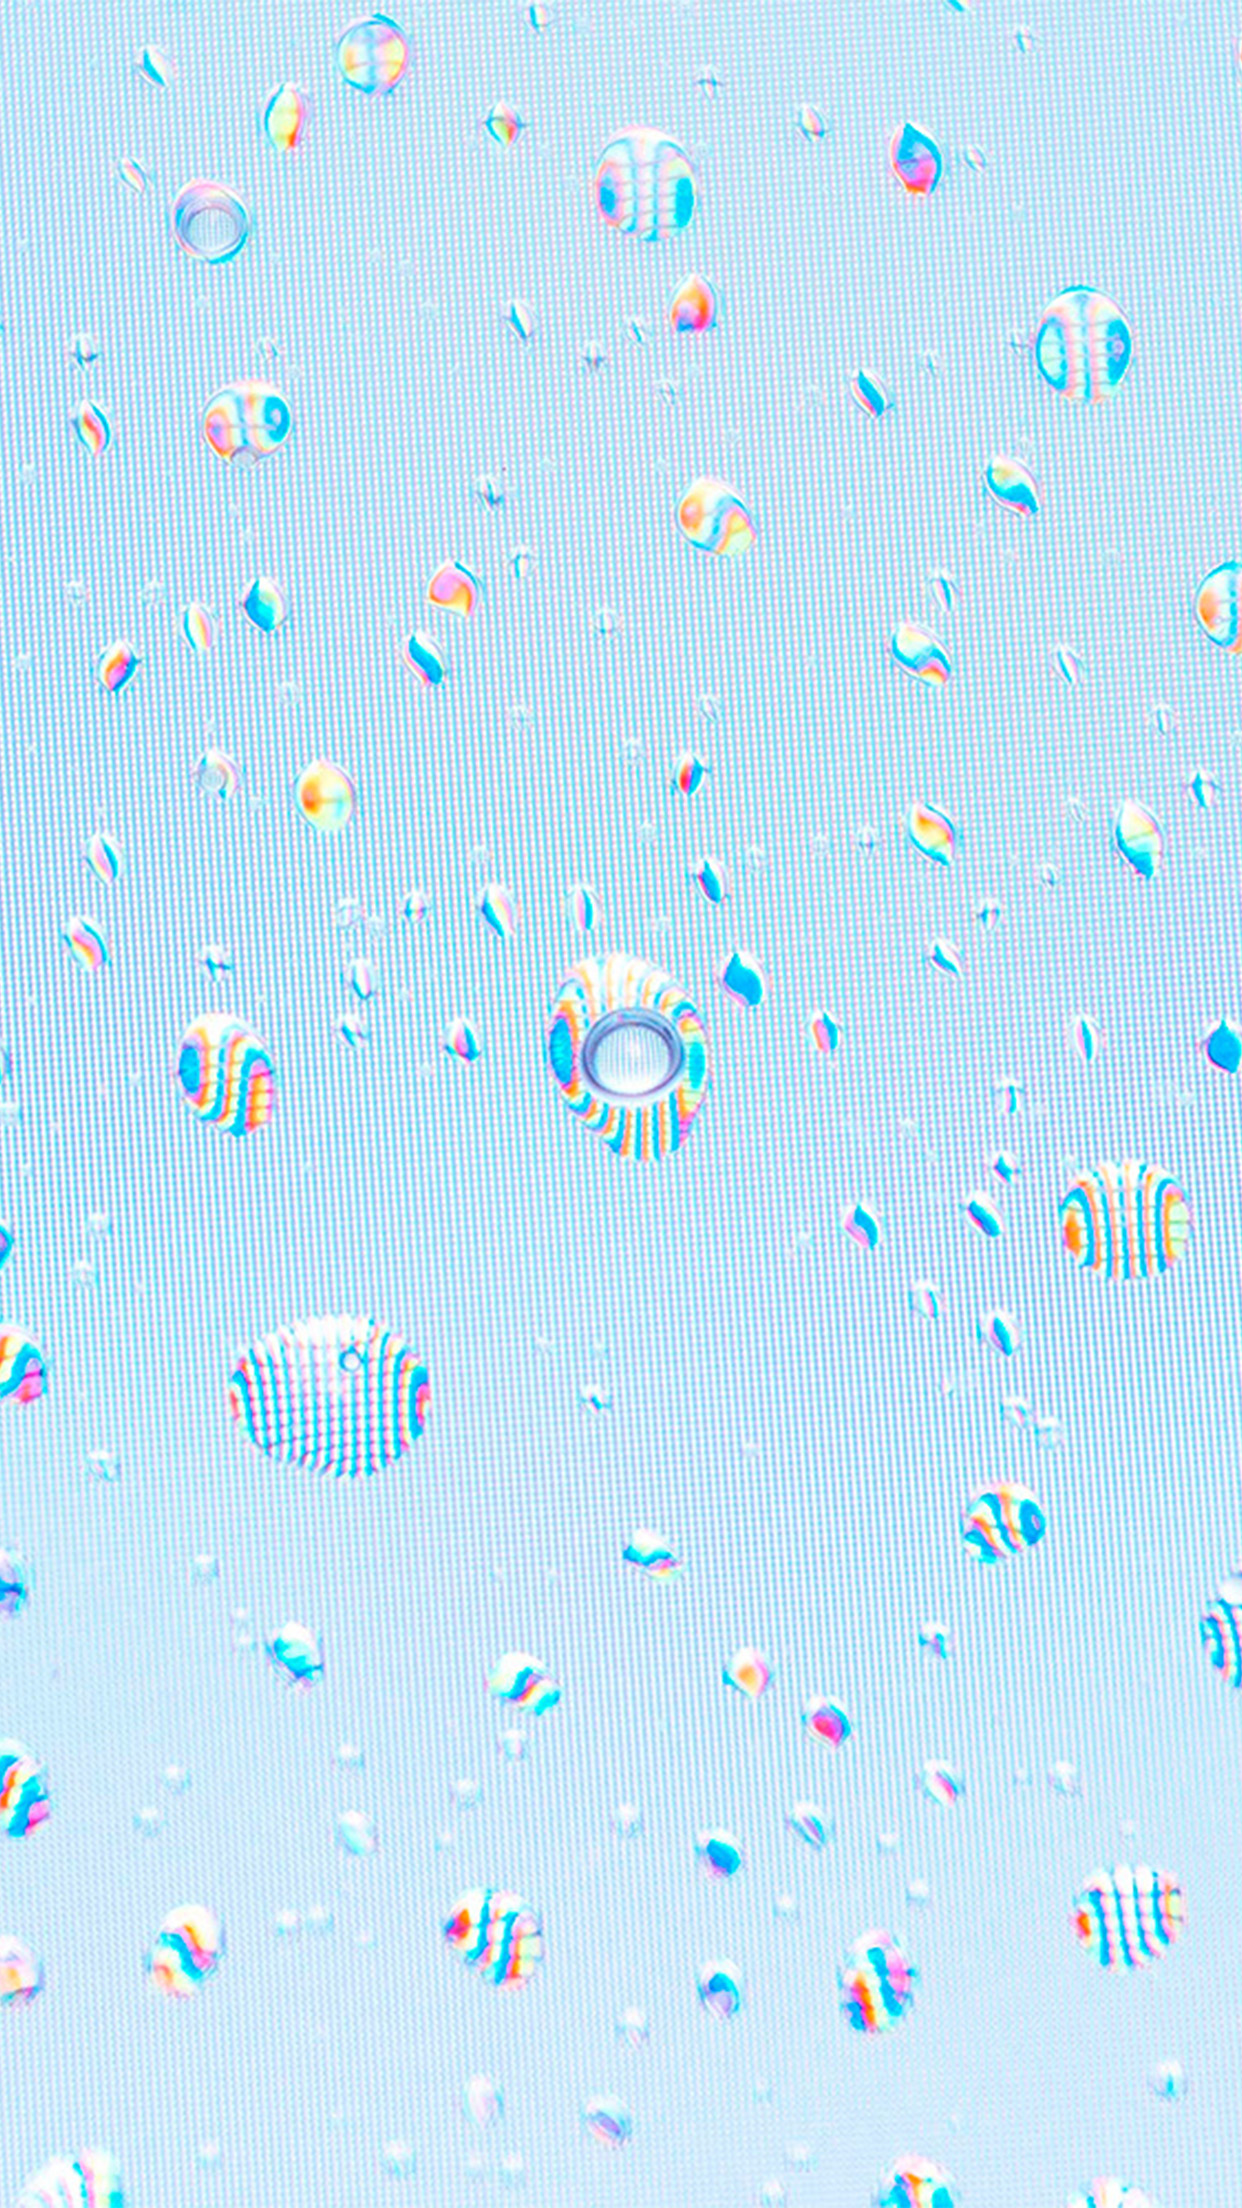 Wa94 Digital Rain Drop Light Pattern Background Wallpaper